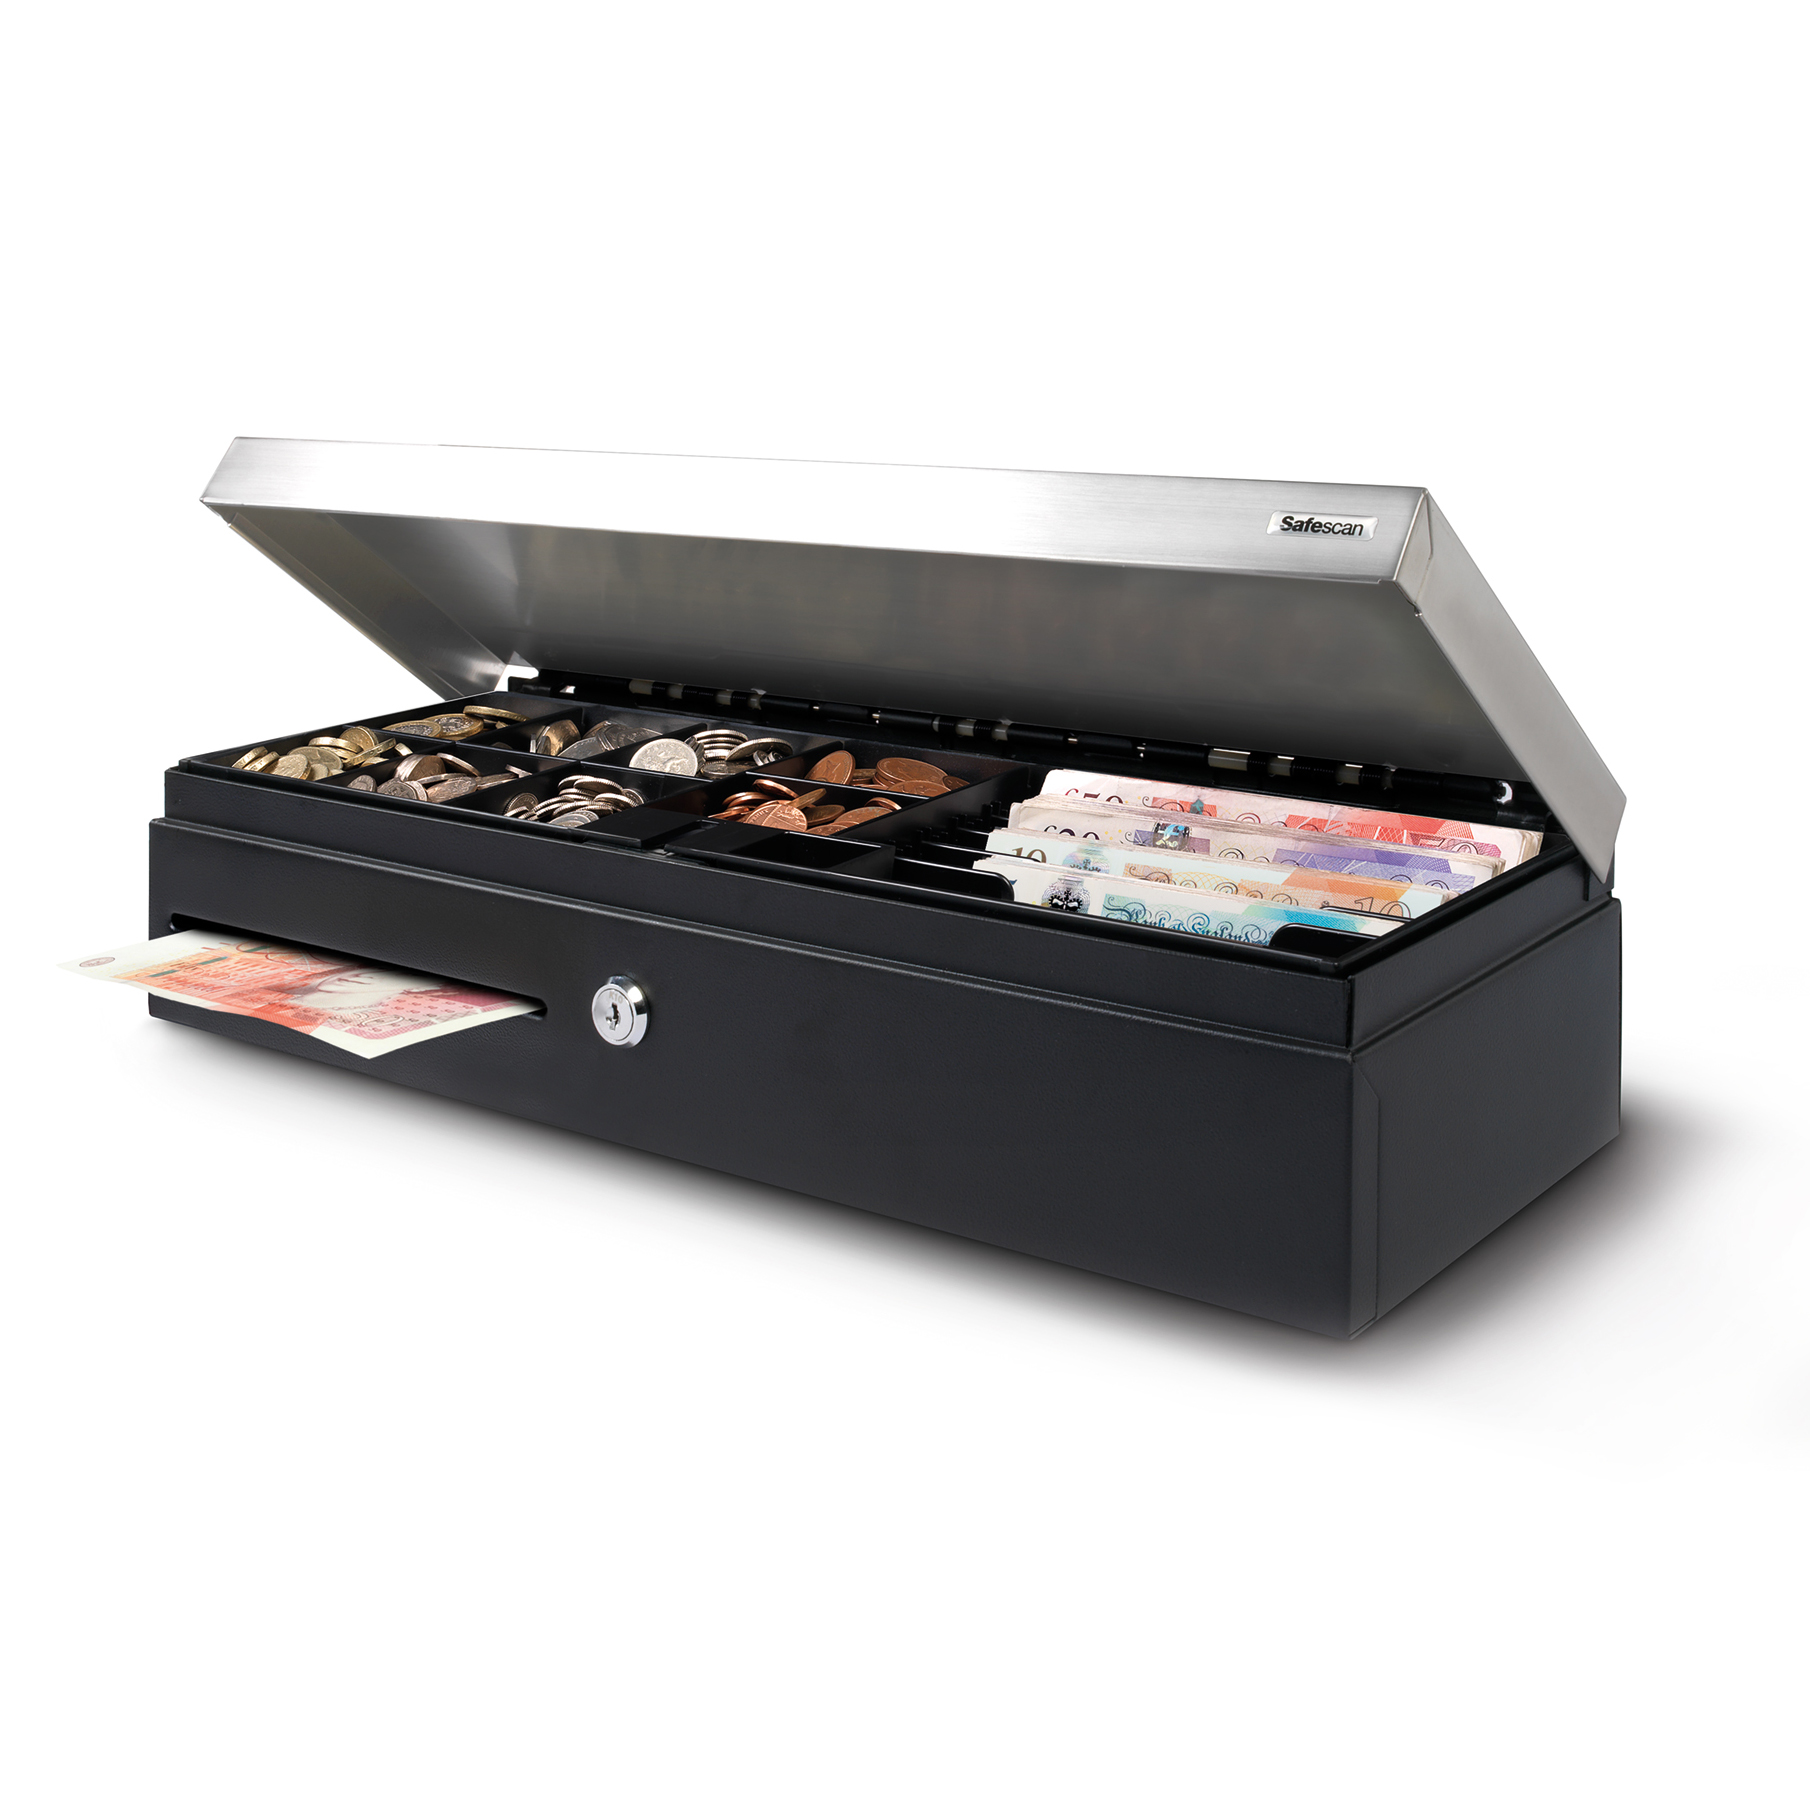 Cash or ticket boxes Safescan SD-4617S Cash Drawer Flip Top Standard Use 4.3kg L460xW170xH100m Black/Silver Ref 132-0498